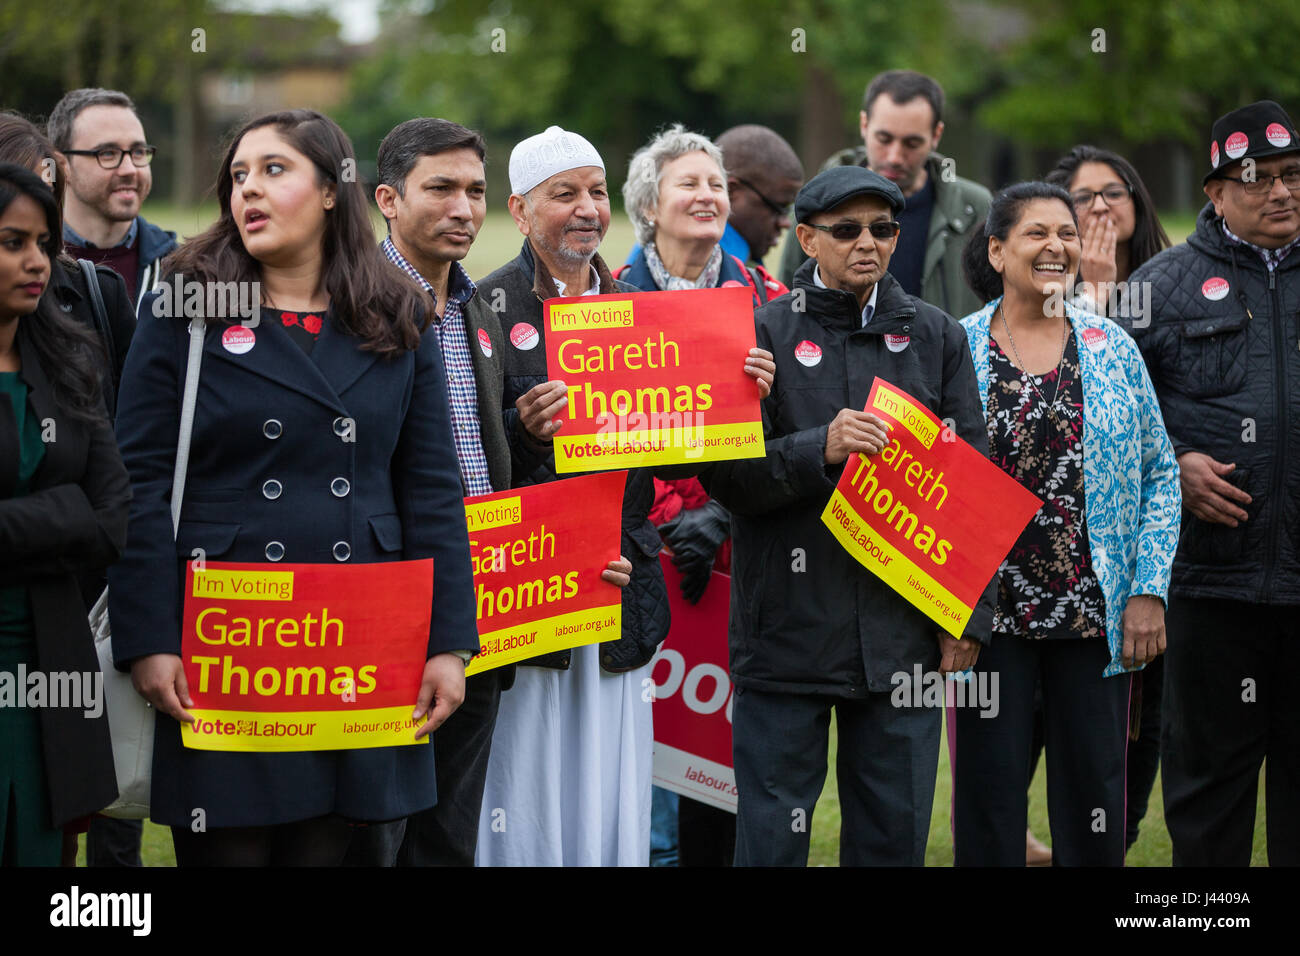 London, UK. 9th May, 2017. Labour Party members campaign in South Harrow for Gareth Thomas, Labour and Co-operative - Stock Image